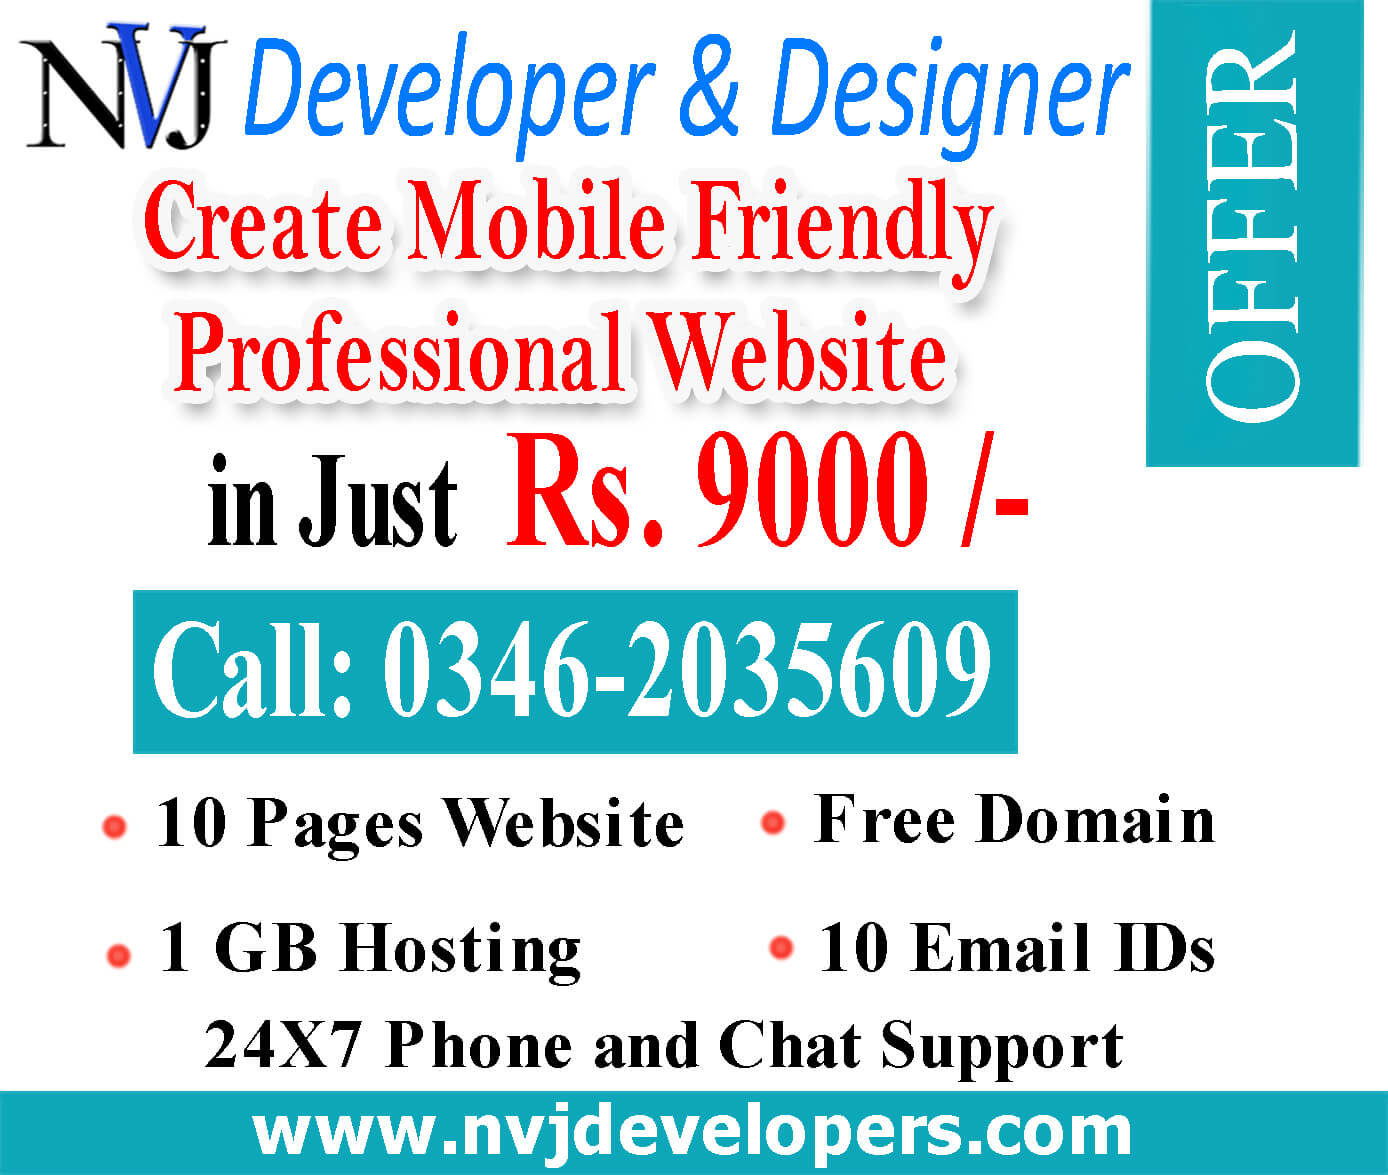 nvj-developers-advertisement-banner